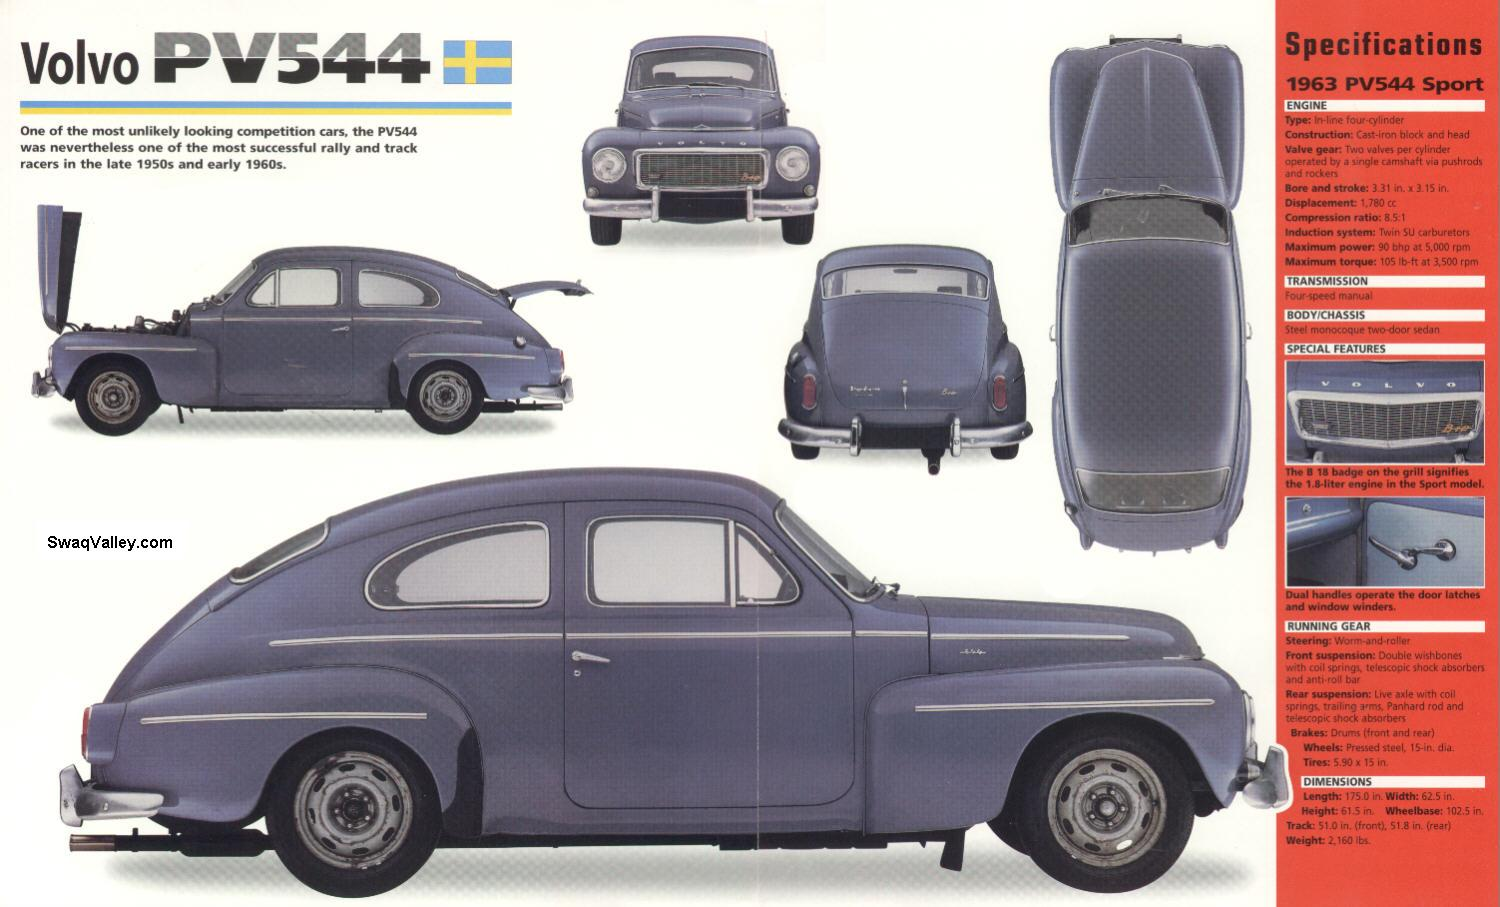 http://www.swaqvalley.com/Blueprints/1963_Volvo_PV544_Sport_low.jpg